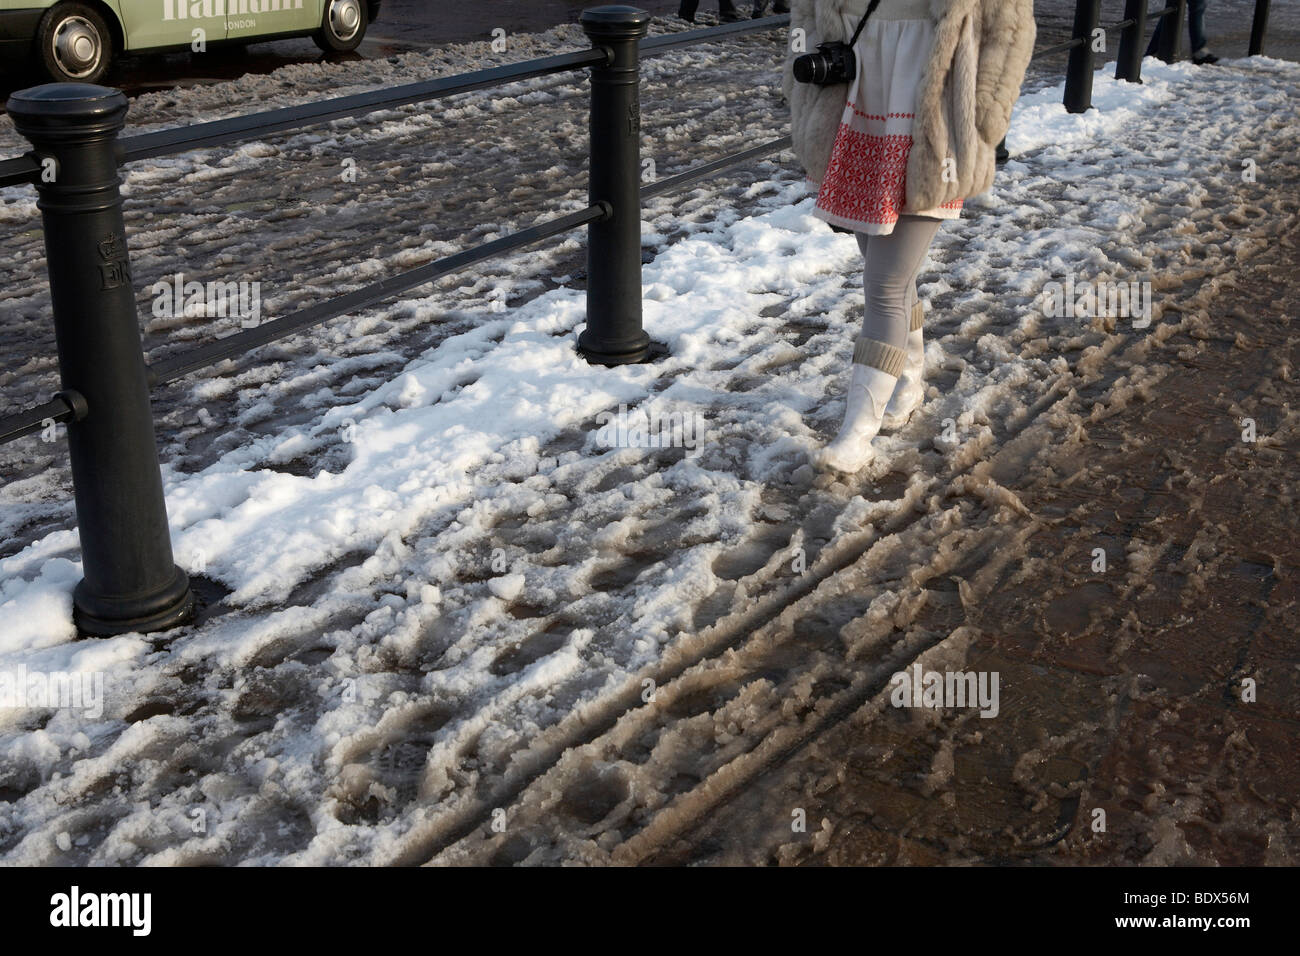 LONDON: SNOW - Stock Image